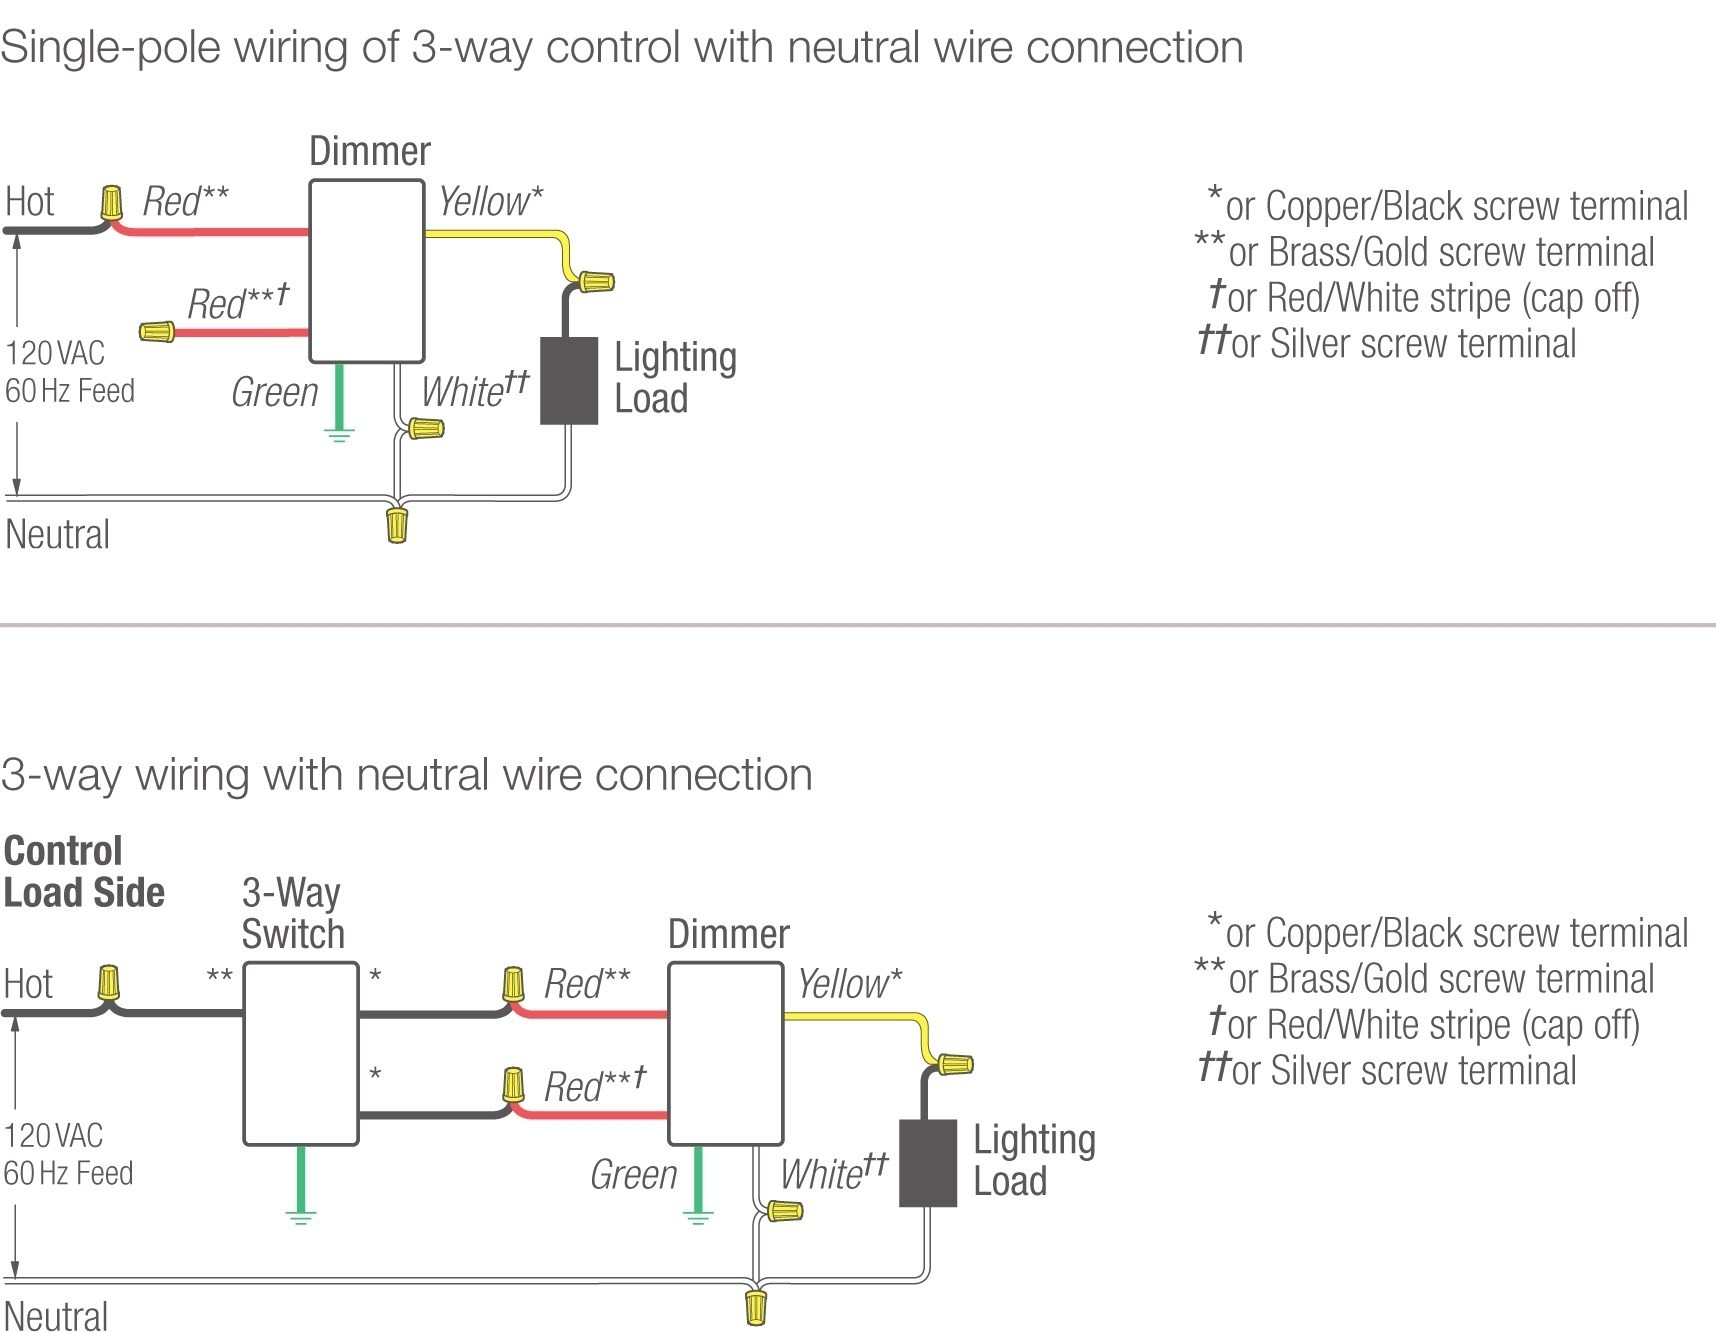 ge dimmer switch wiring diagram lutron dimming ballast wiring diagram | free wiring diagram dv 600p dimmer switch wiring diagram